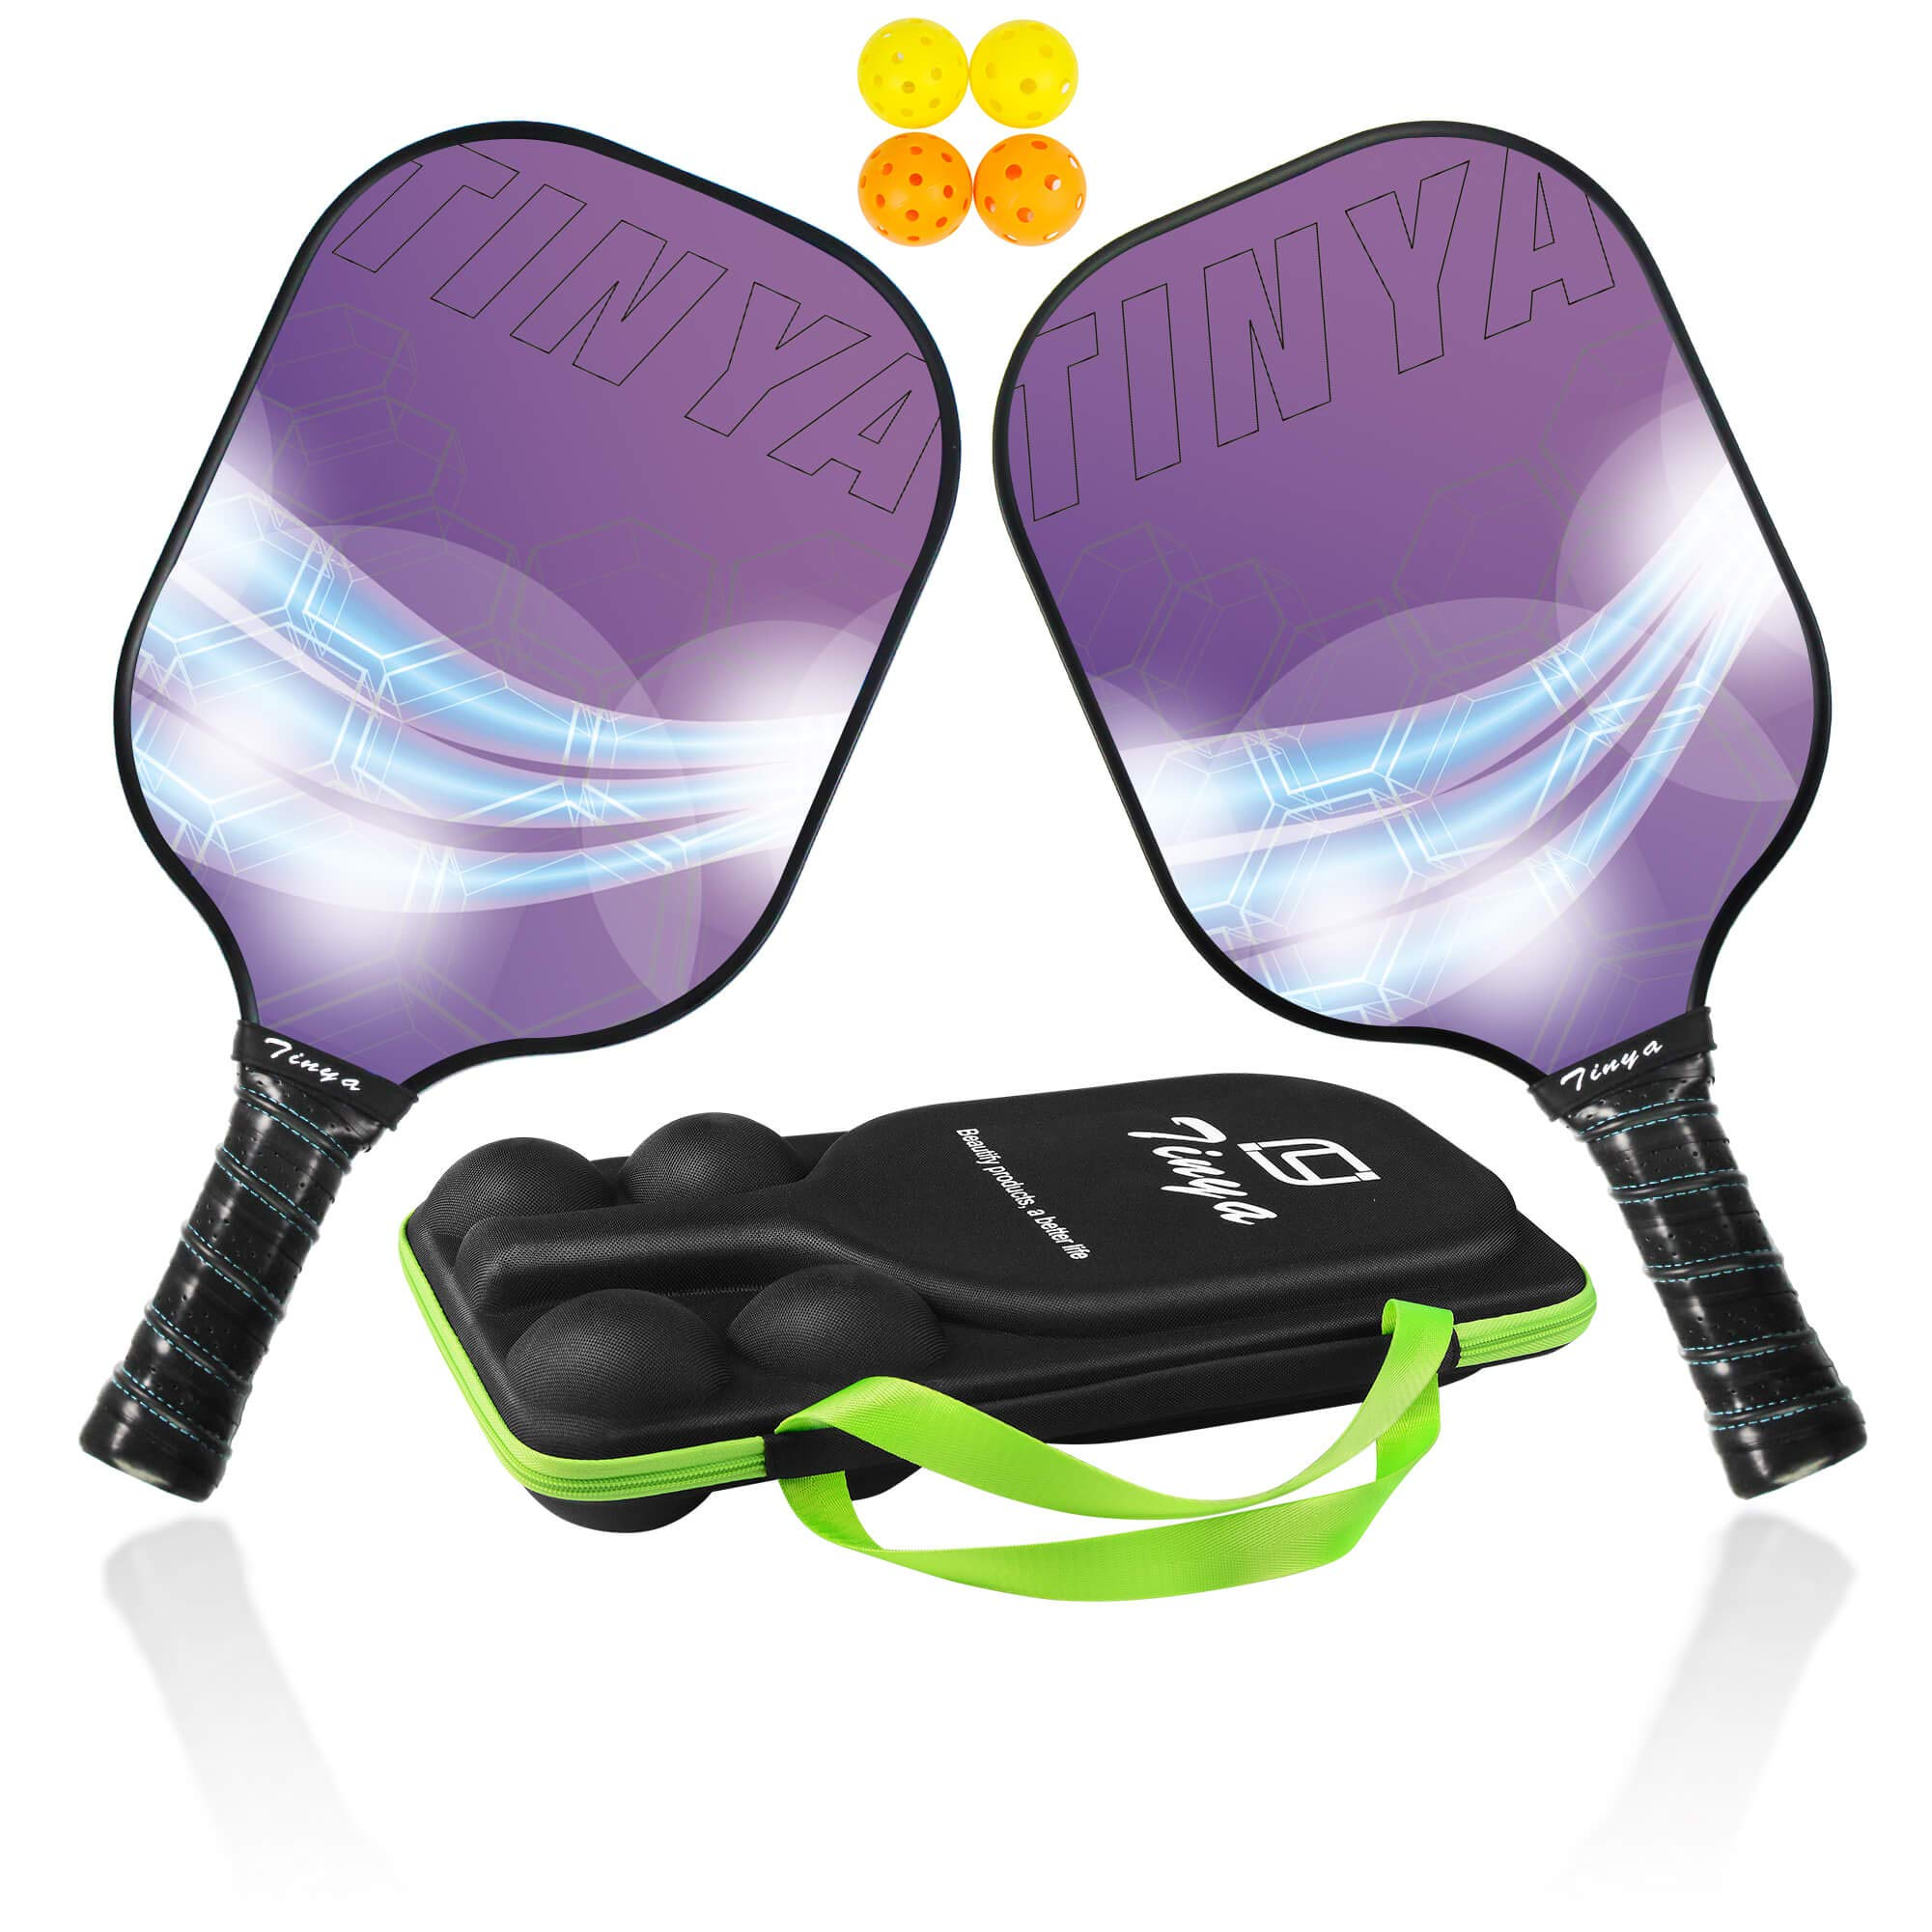 EDEUOEY Graphite Pickleball Paddle Set: USAPA Approved -X6CQ